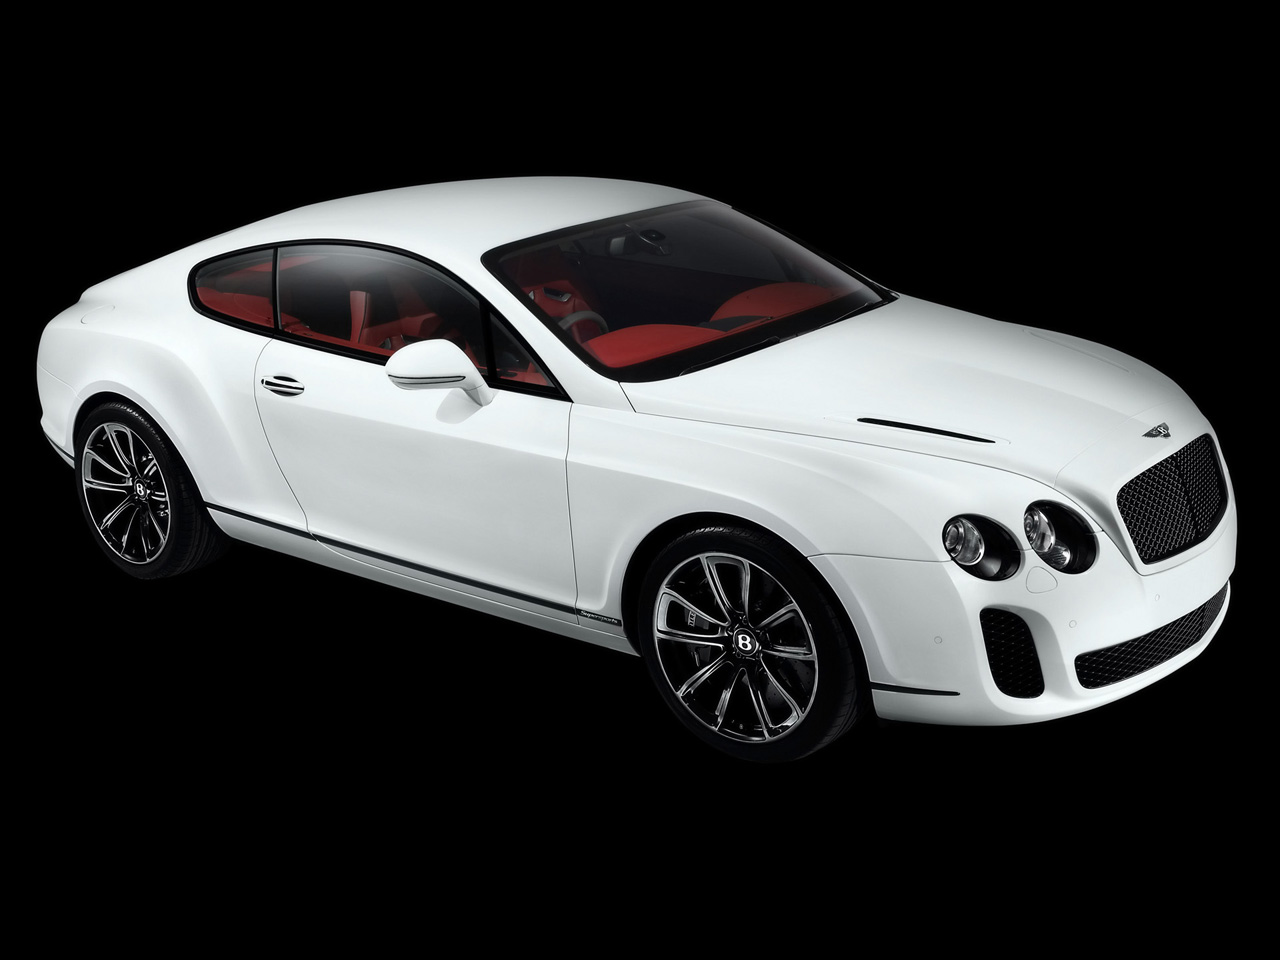 Bentley Continental - 1280 x 960, 12 из 18